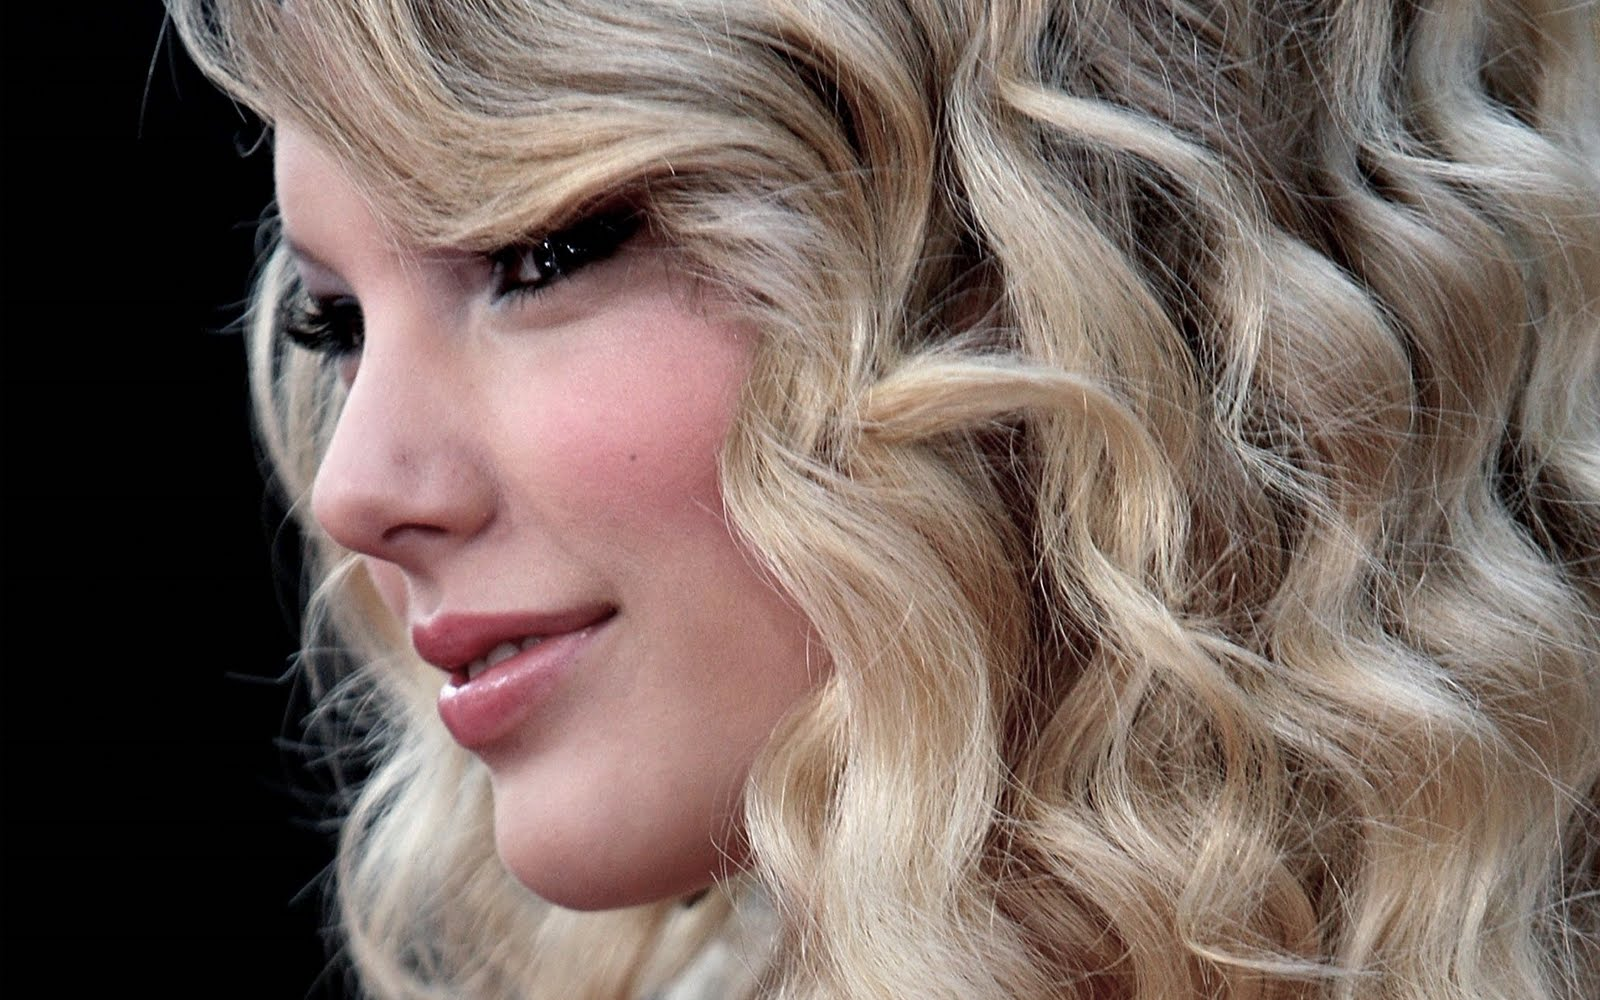 http://3.bp.blogspot.com/-NXbdiJEU0xA/TdKNvOFxtLI/AAAAAAAAAss/-DXZg_UAtc4/s1600/Taylor-Swift-video%2B%20Taylor-Swift-music%2B%20Taylor-swift-Taylor-Swift-video%2B%20Taylor-Swift-music%2B%20Taylor-swift-Taylor-Swift-video%2B%20Taylor-Swift-music%2B%20Taylor-swift-Taylor-Swift-video%2B%20Taylor-Swift-music%2B%20Taylo.jpg